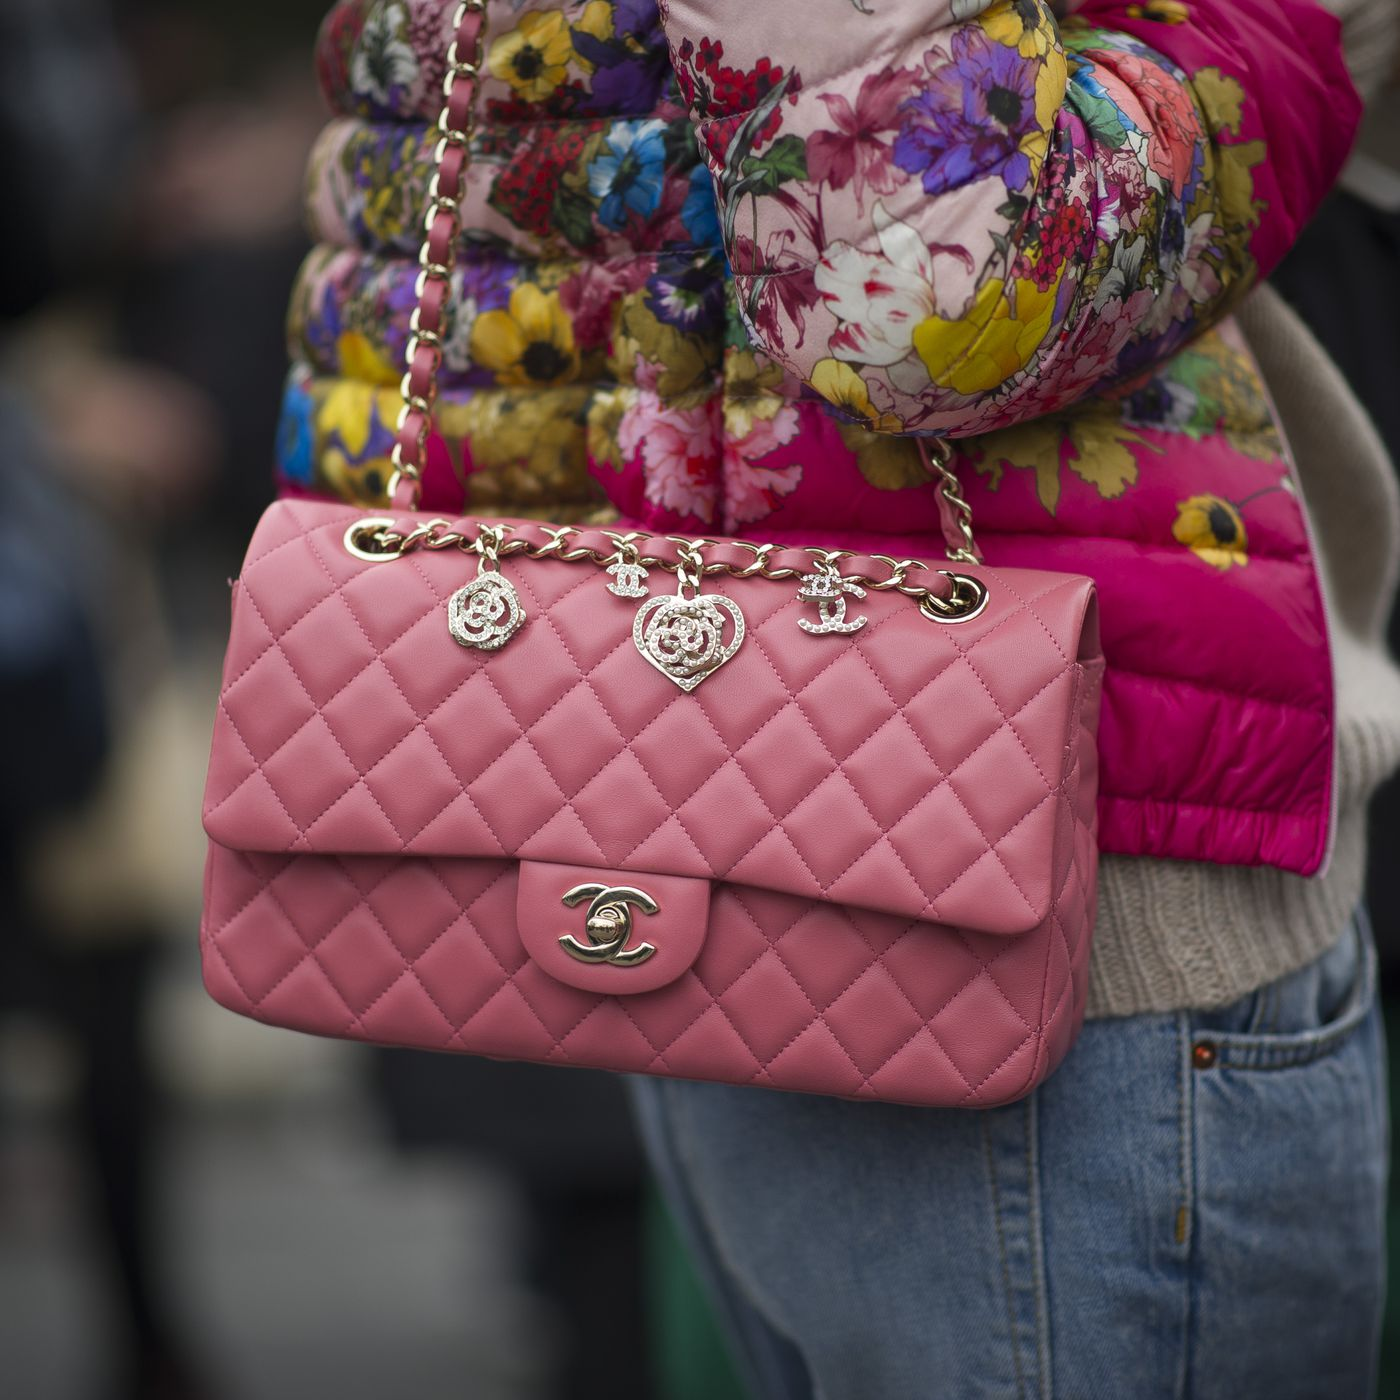 064856890026 See How Much Chanel Bag Prices Have Skyrocketed This Decade - Racked